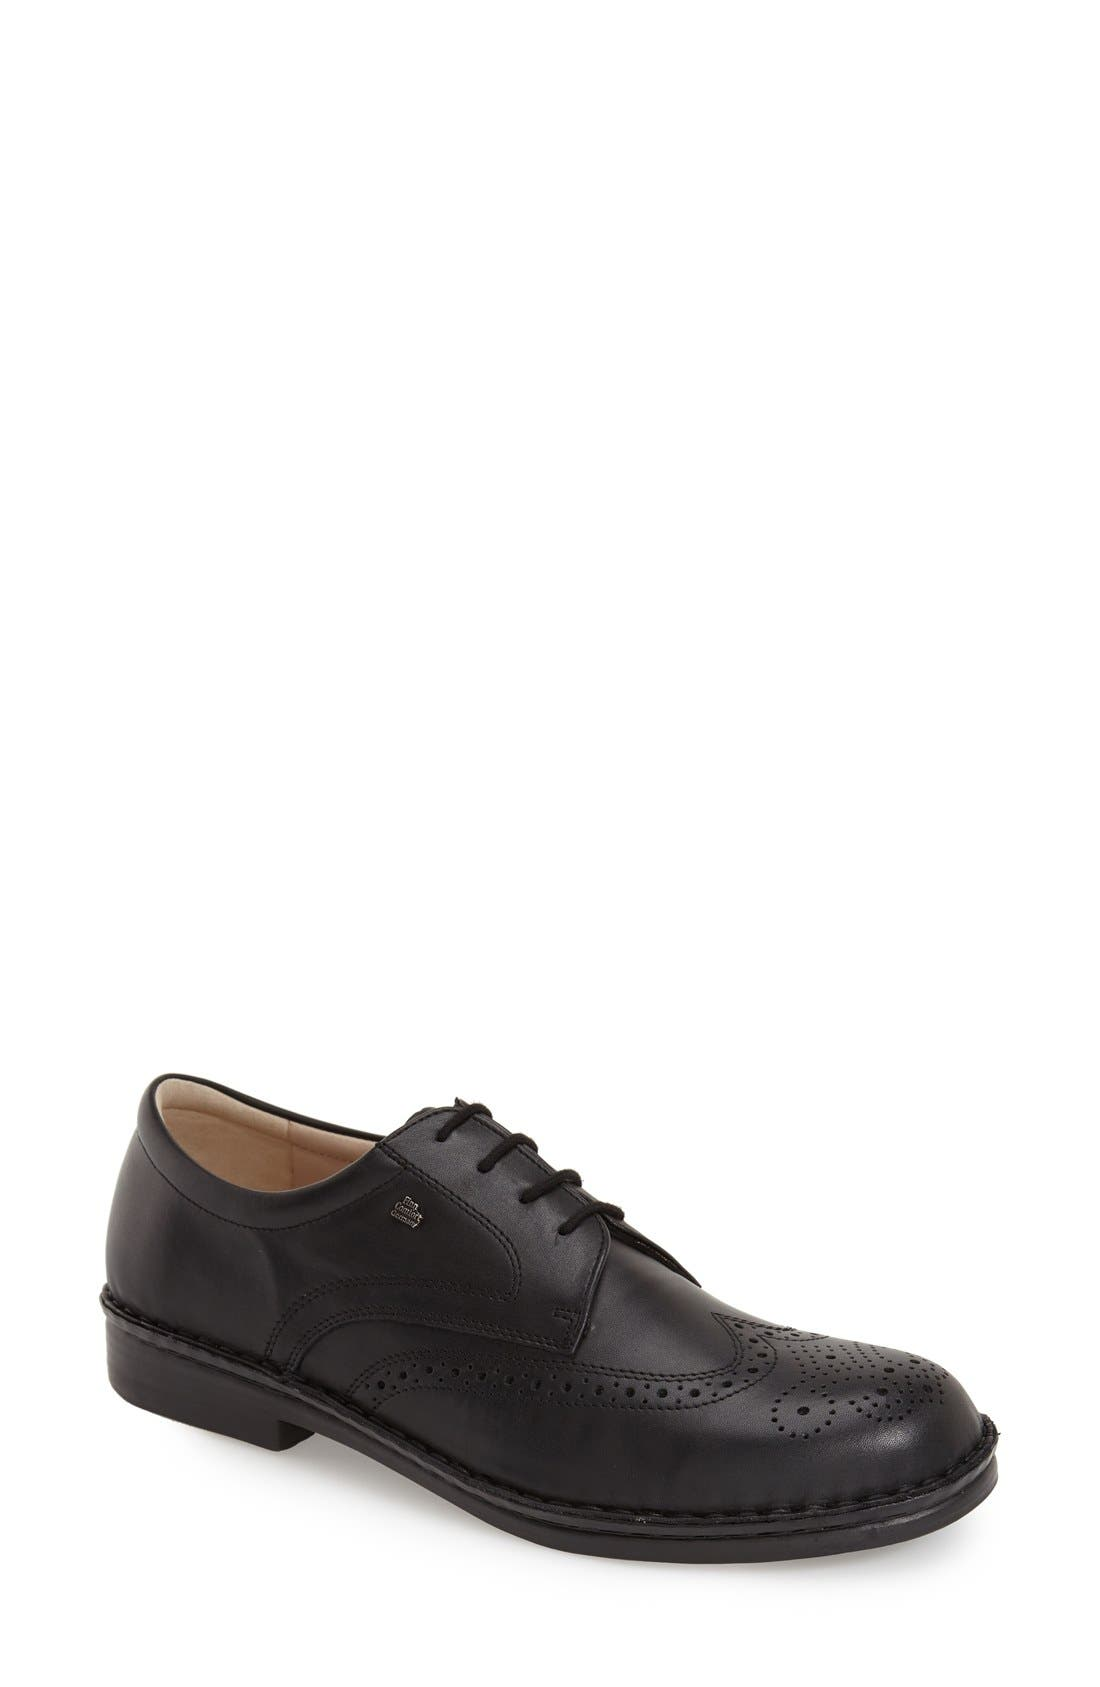 'Budapest' Oxford,                             Main thumbnail 1, color,                             BLACK LEATHER